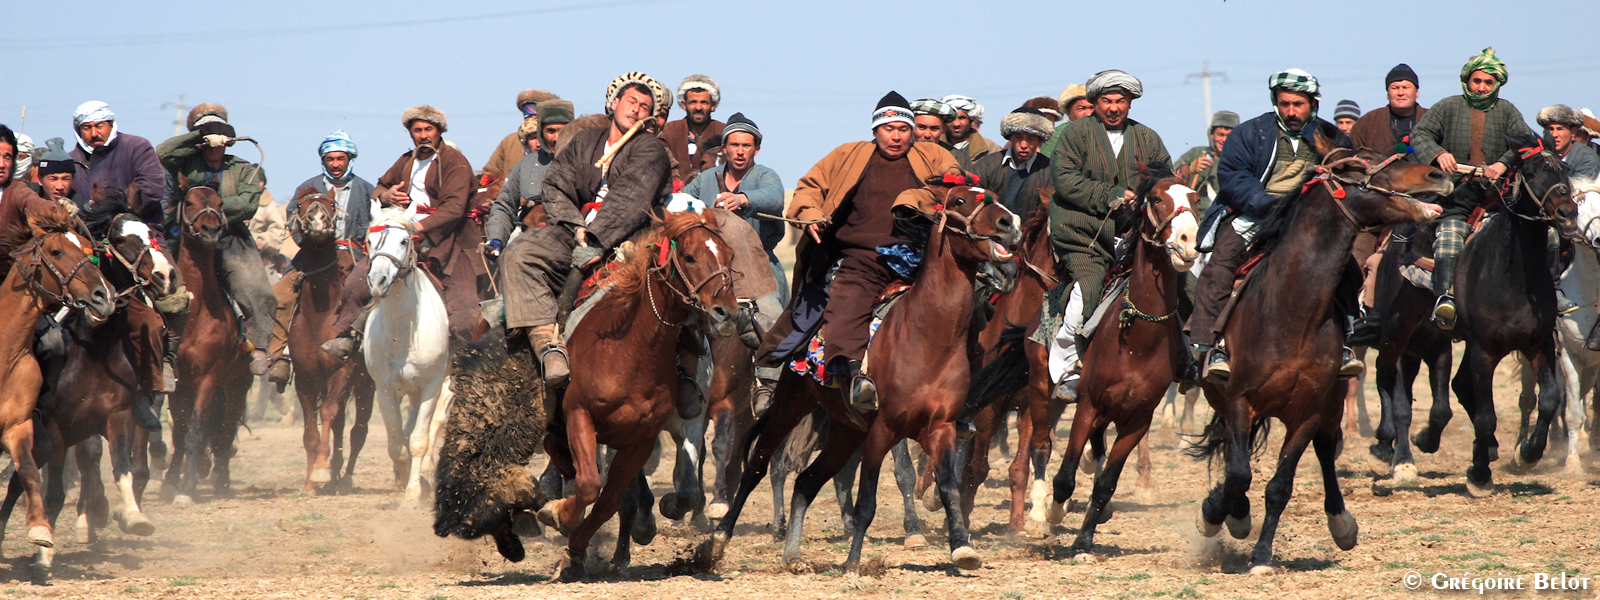 THE AFGHAN HORSEMEN